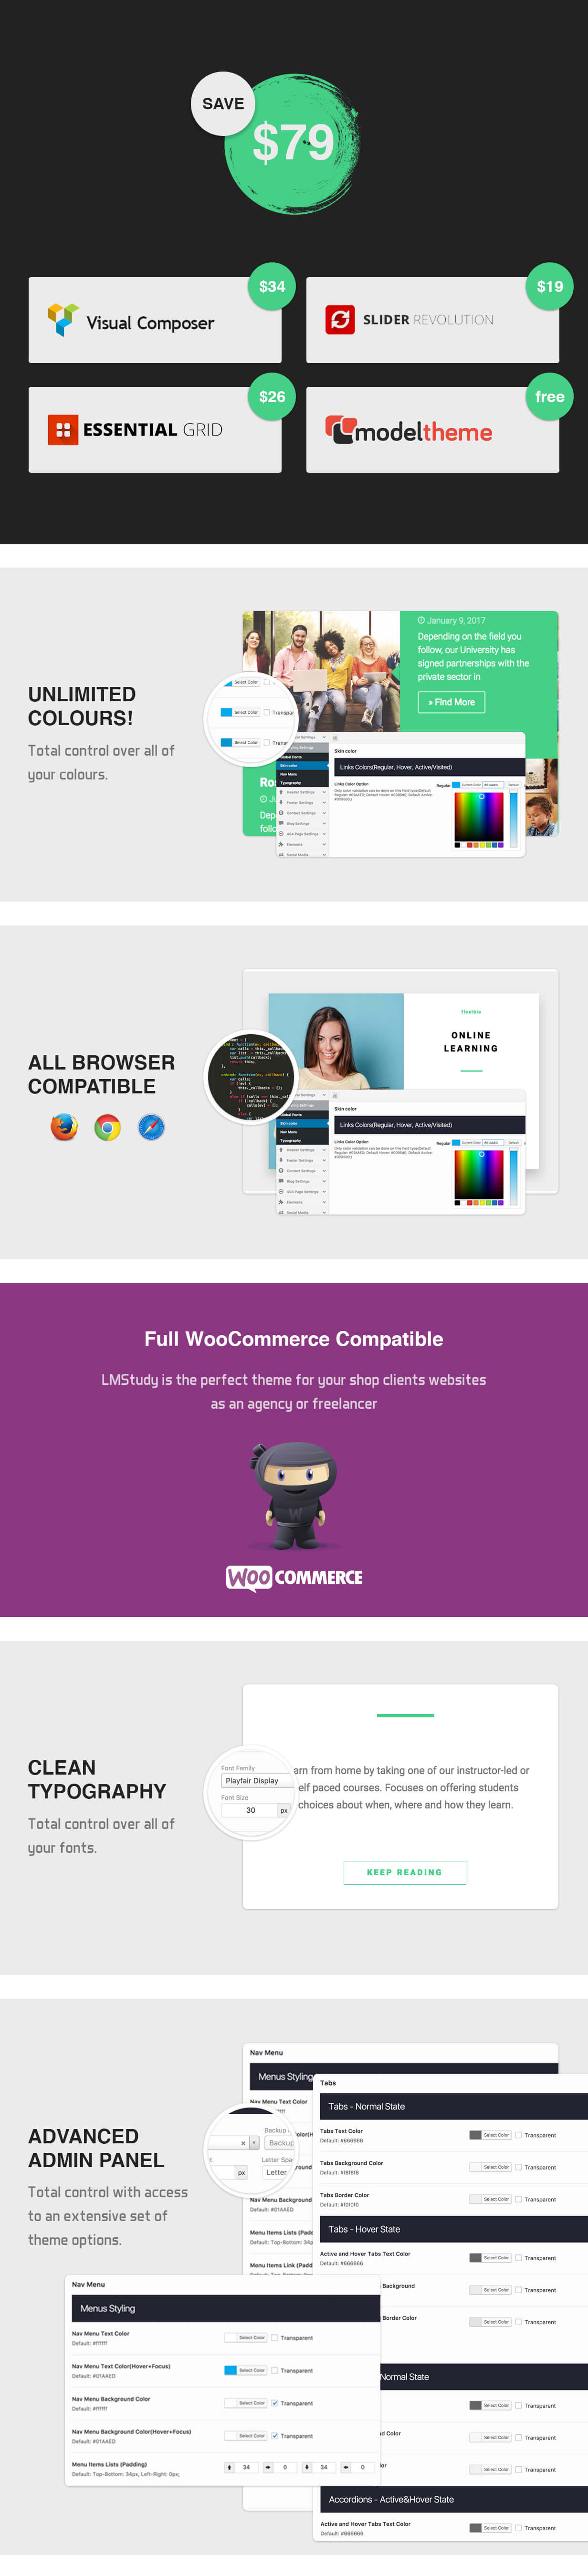 LMStudy - Course / Learning / Education LMS WooCommerce Theme - 6